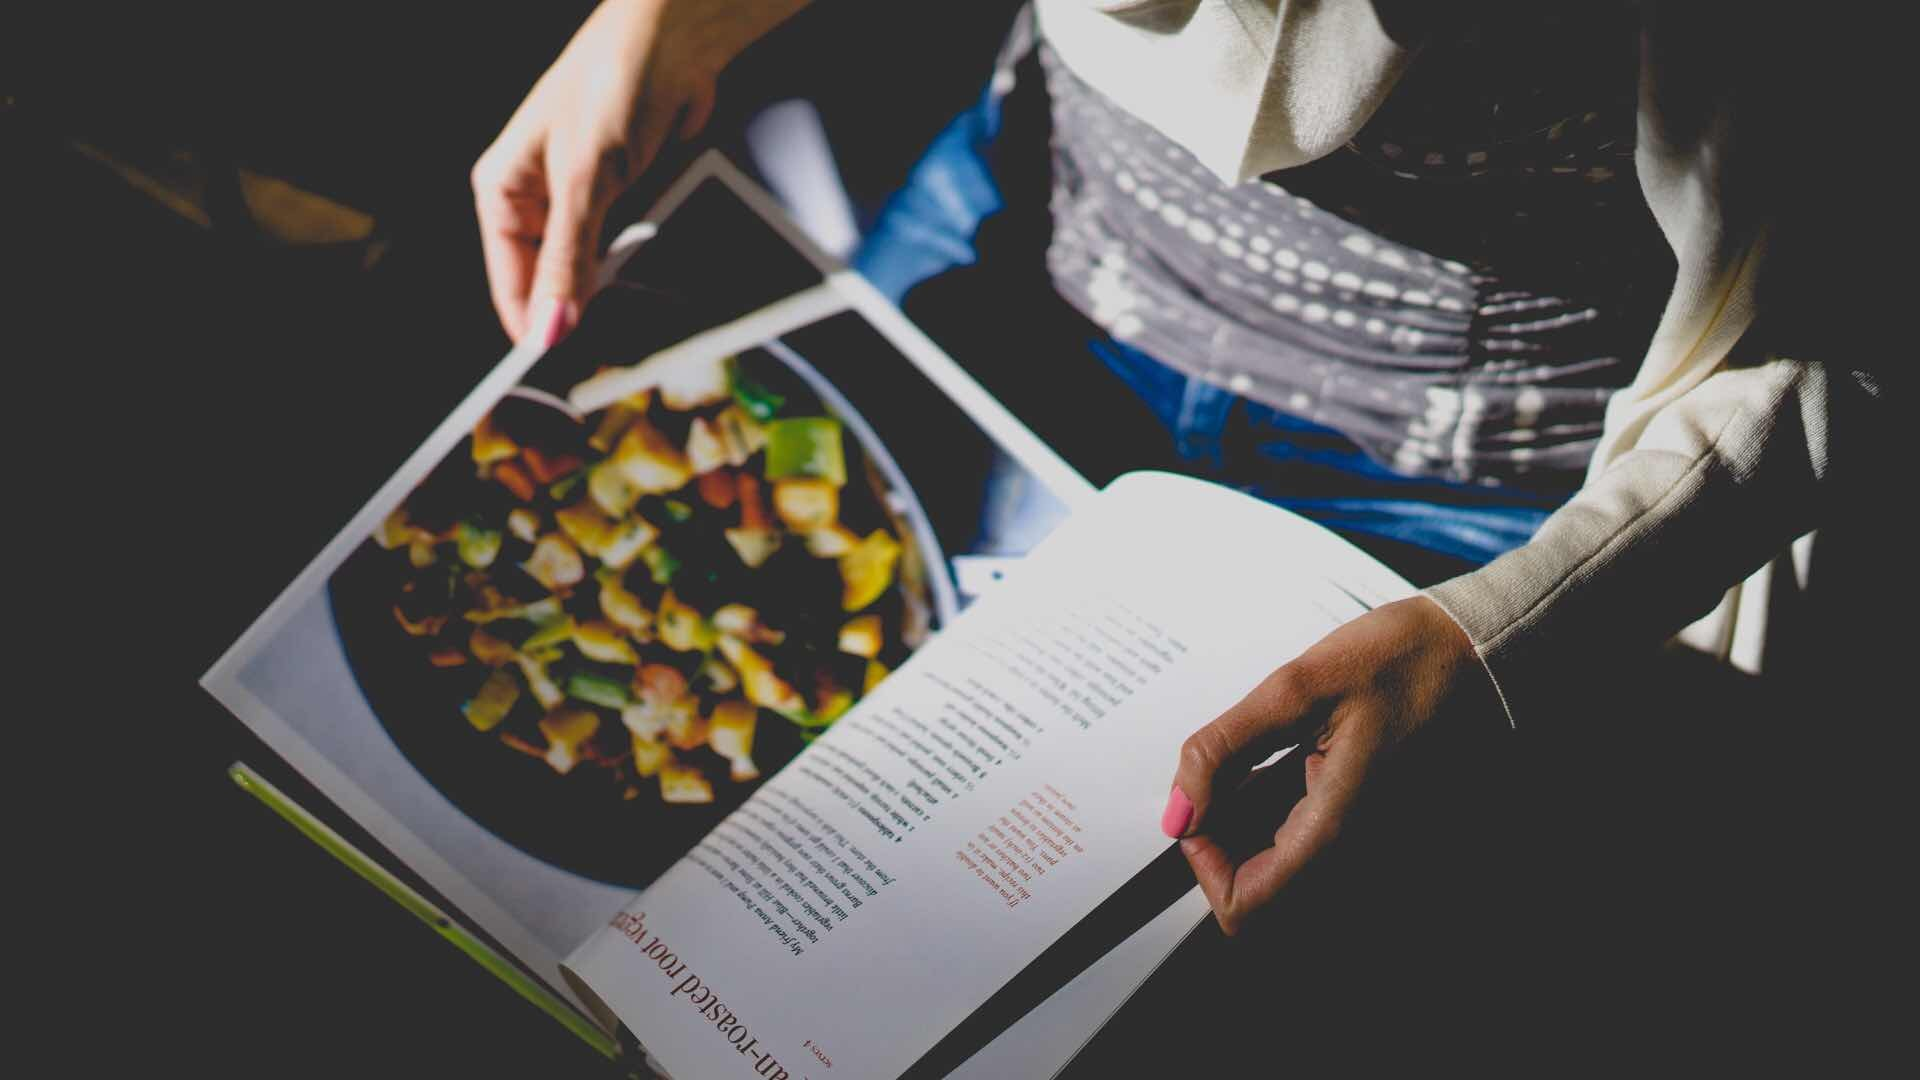 5-cookbooks-that-make-excellent-gifts-guide-hero-dan-gold